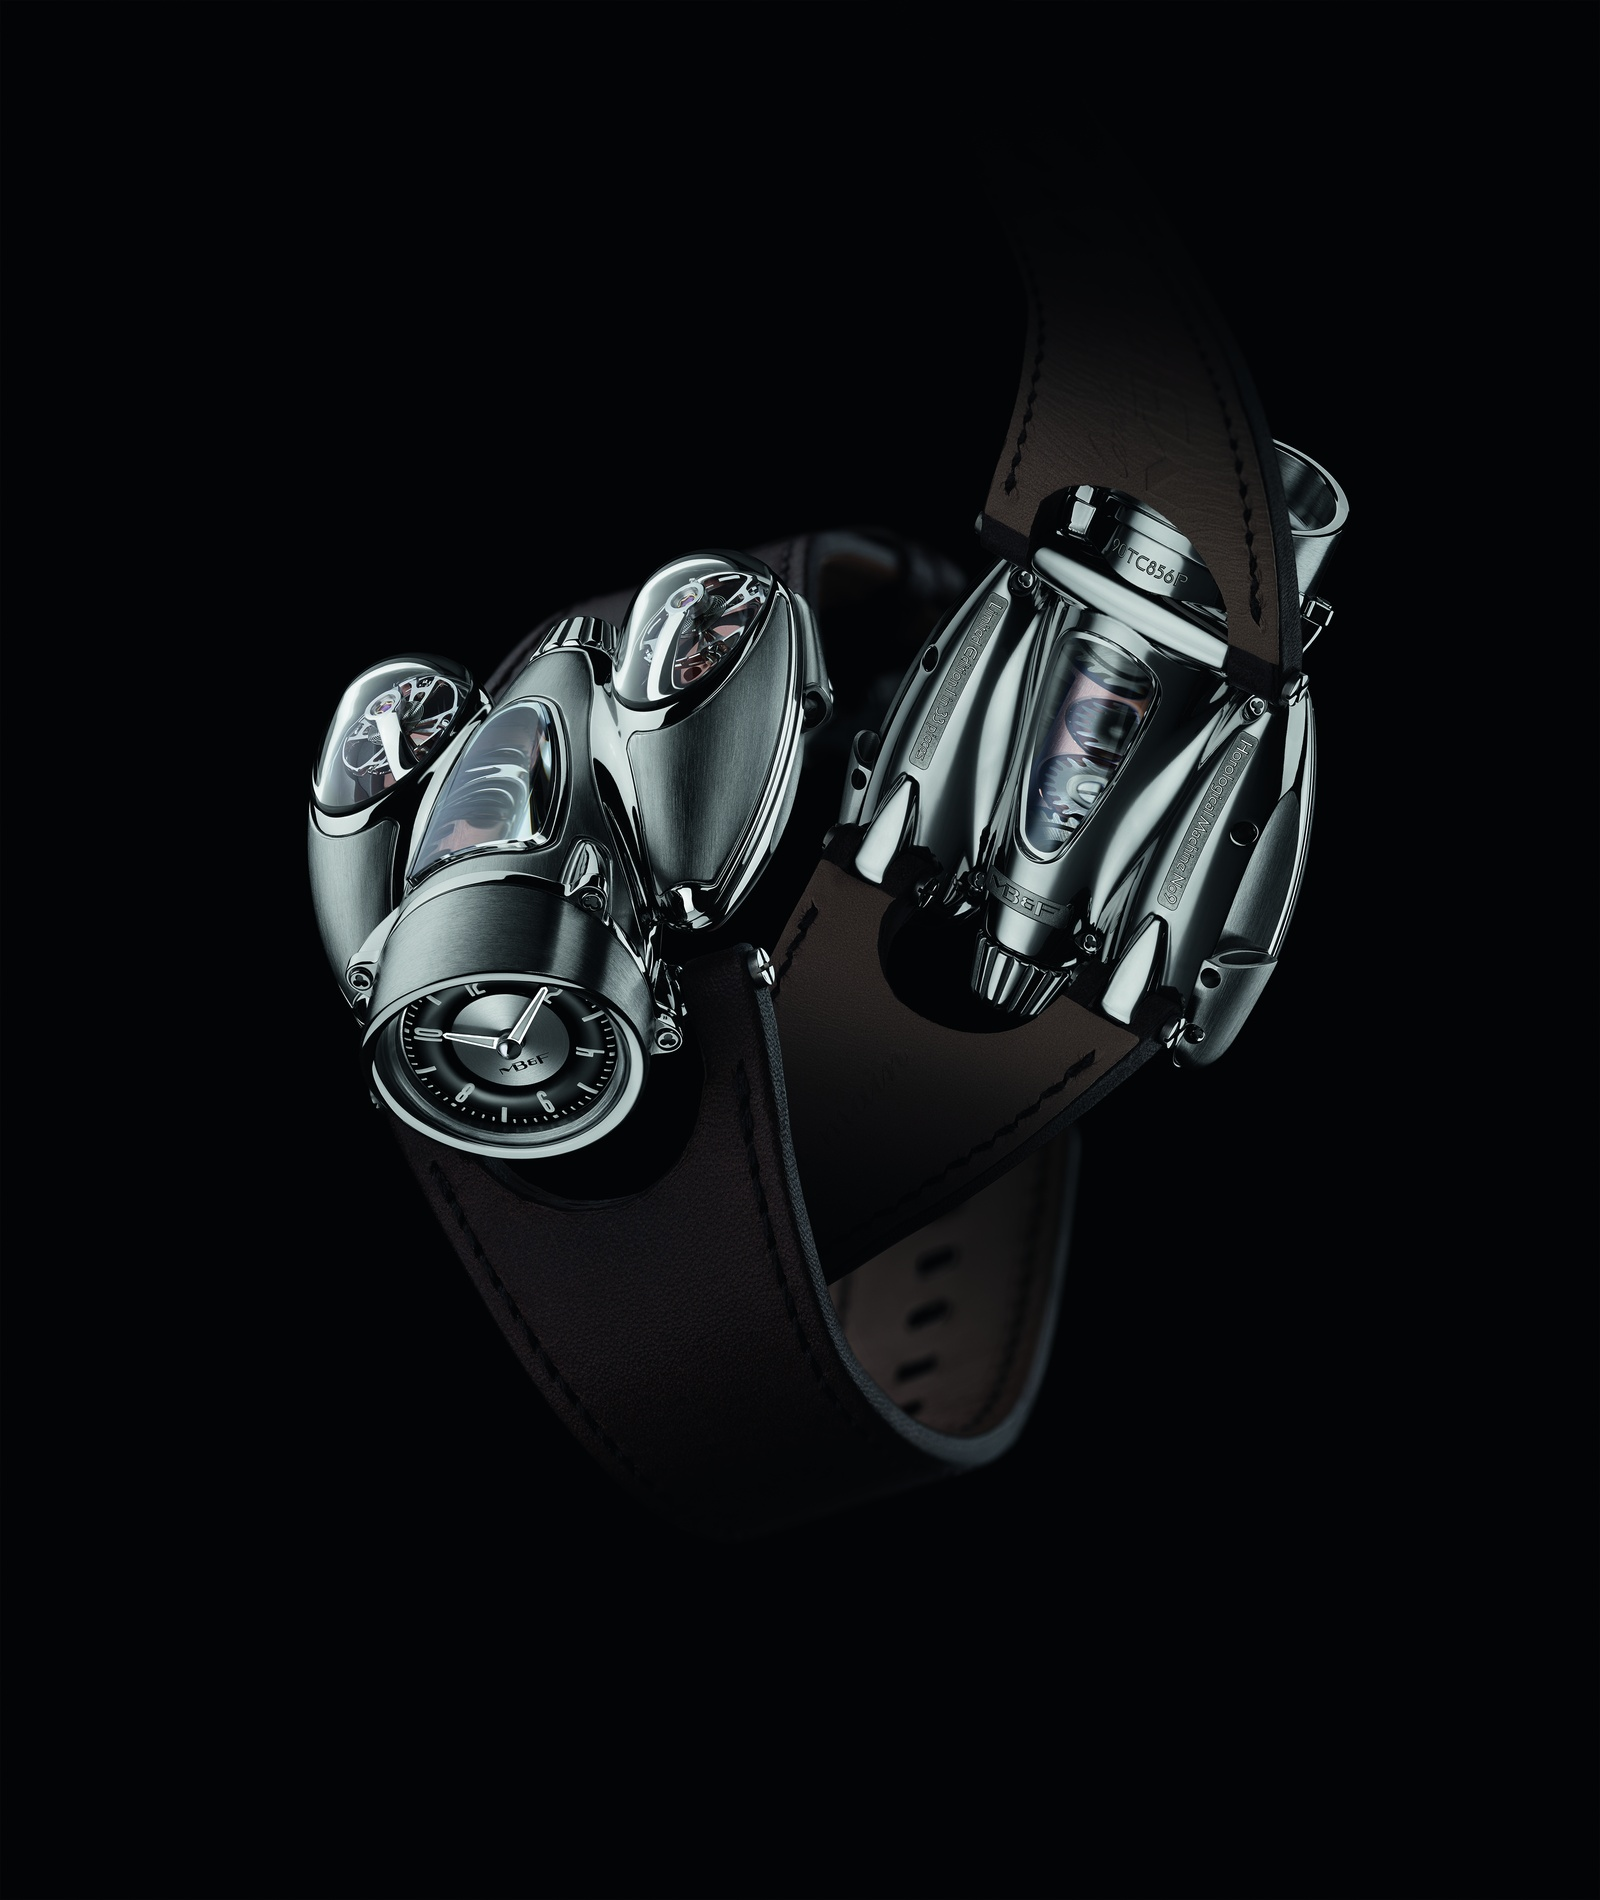 MB&F Horological Machine N°9 'Flow' HM9